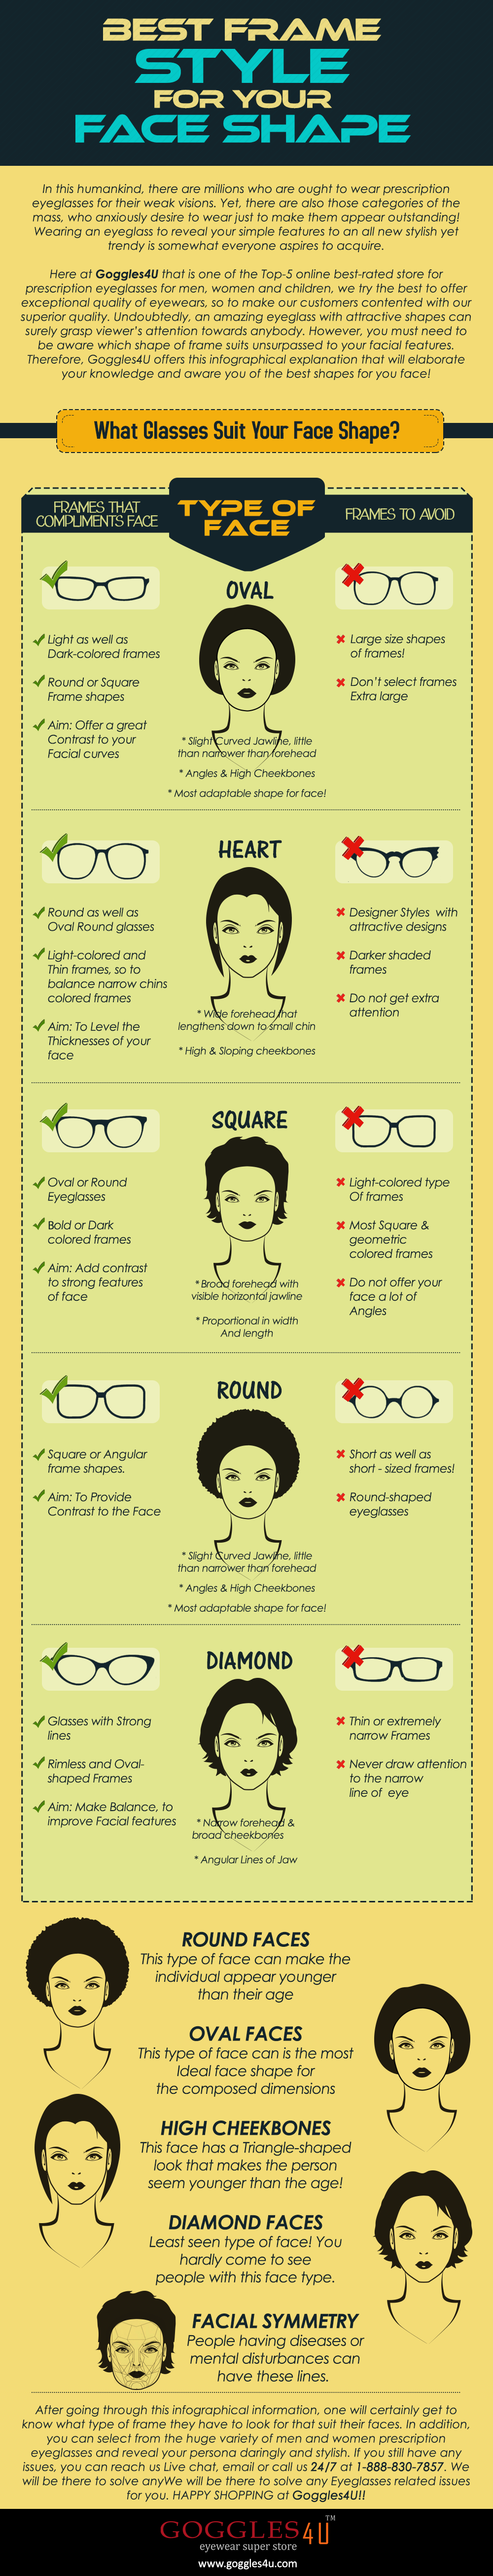 Infographic Eyeglasses According to Face Shapes